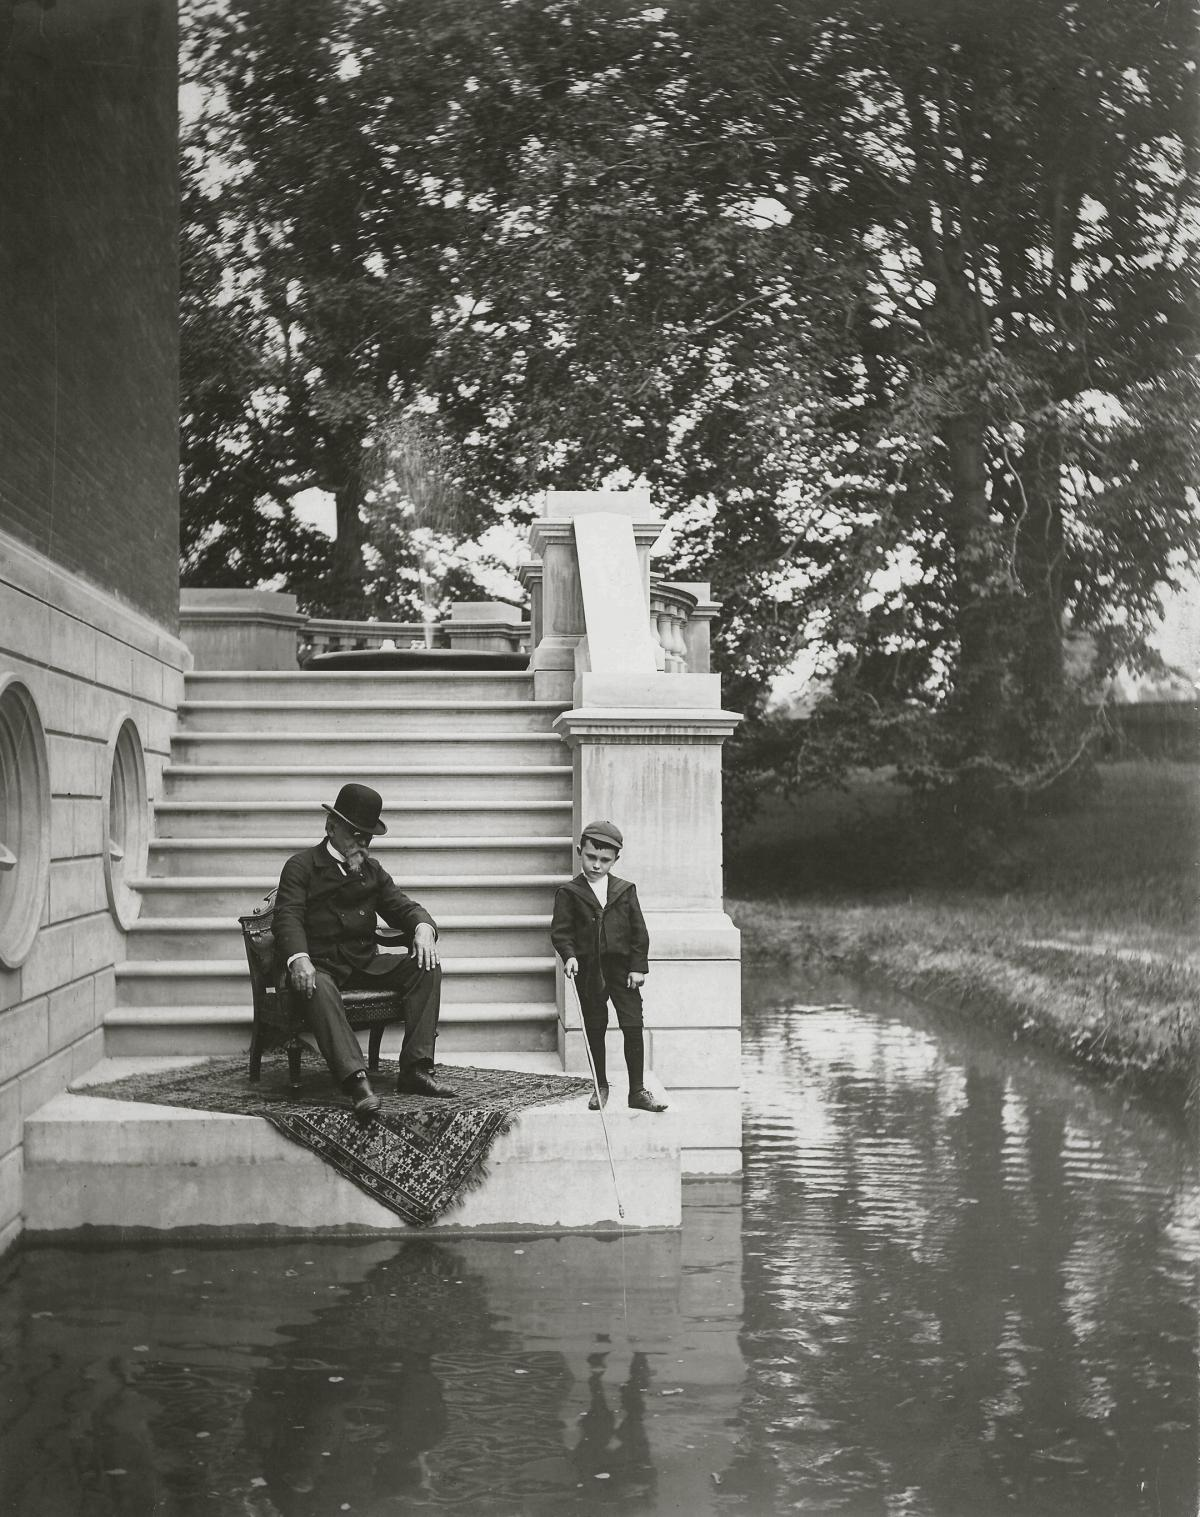 Wallace, in a bowler hat and dark suit, sits on a chair and looks down into the moat, while his grandson dips a short pole into the water